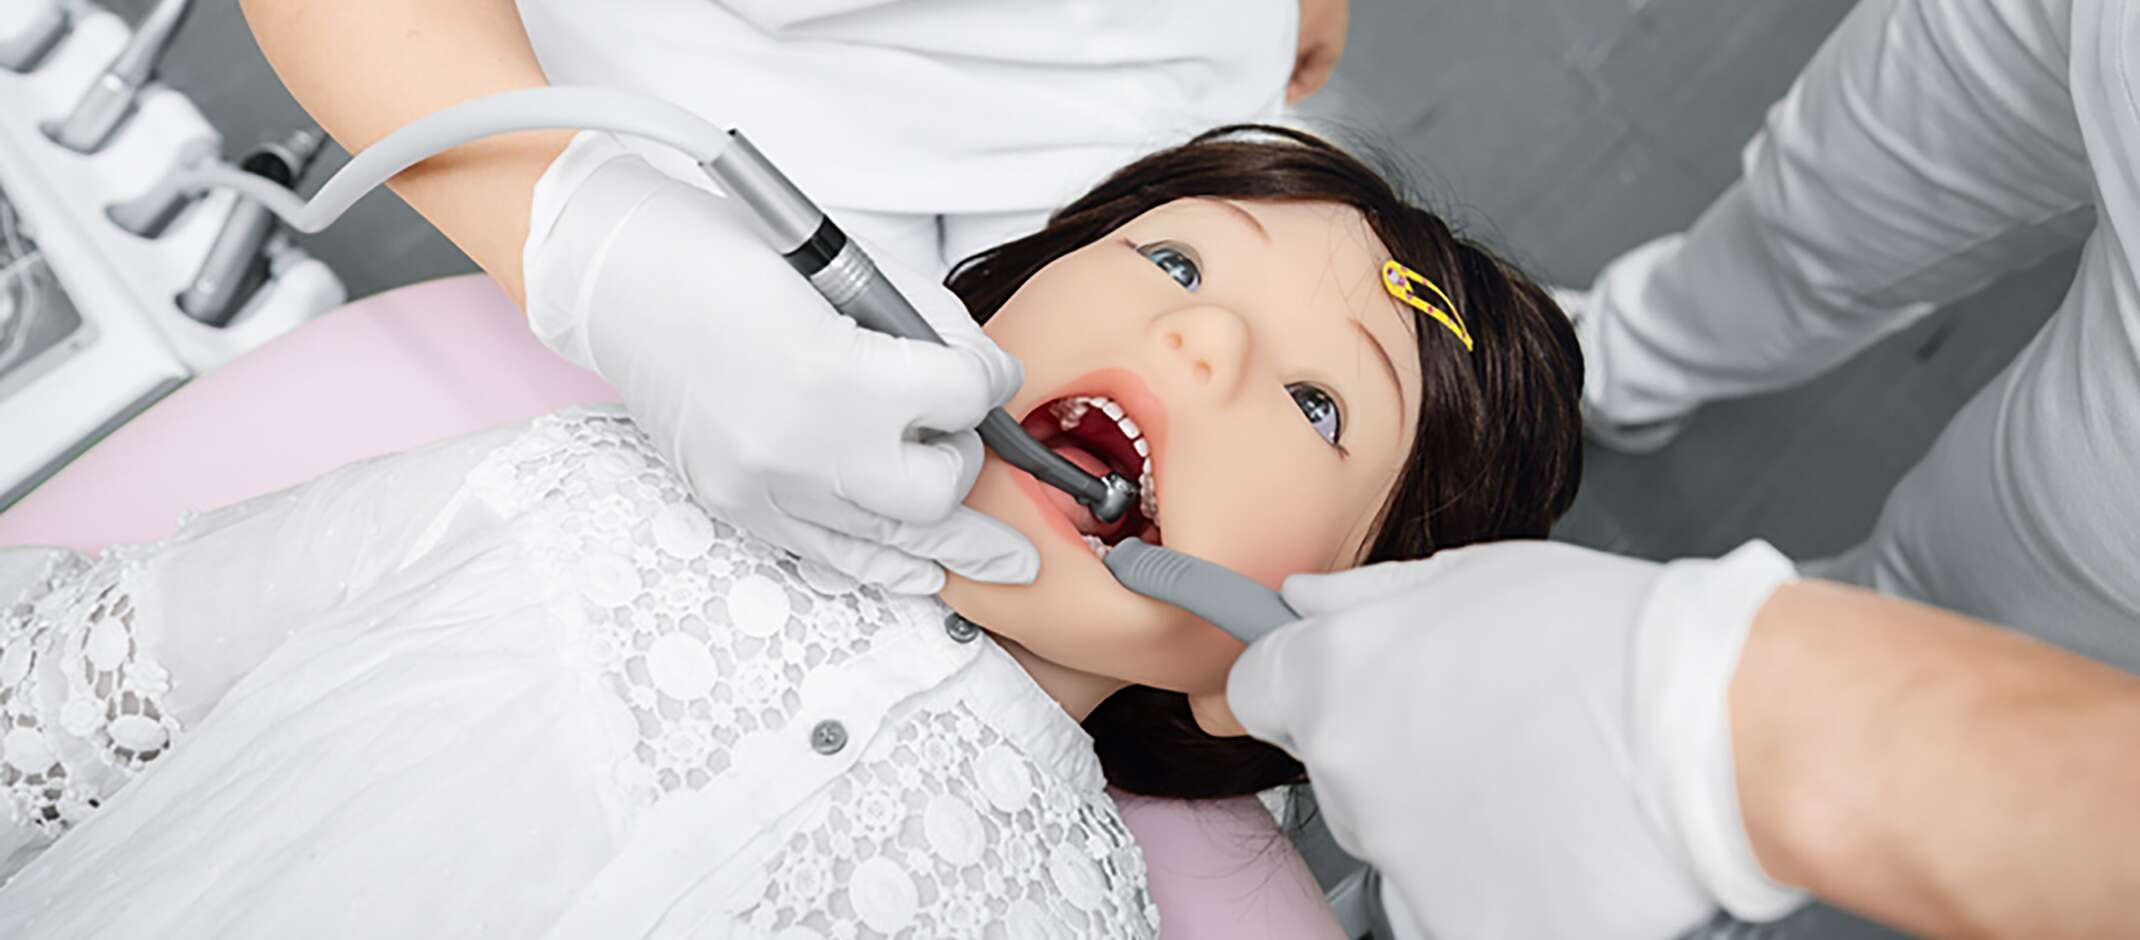 Fidgeting, twitching or sudden closing of the mouth: The humanoid robot for training purposes simulates the possible behavior of children during a dental treatment